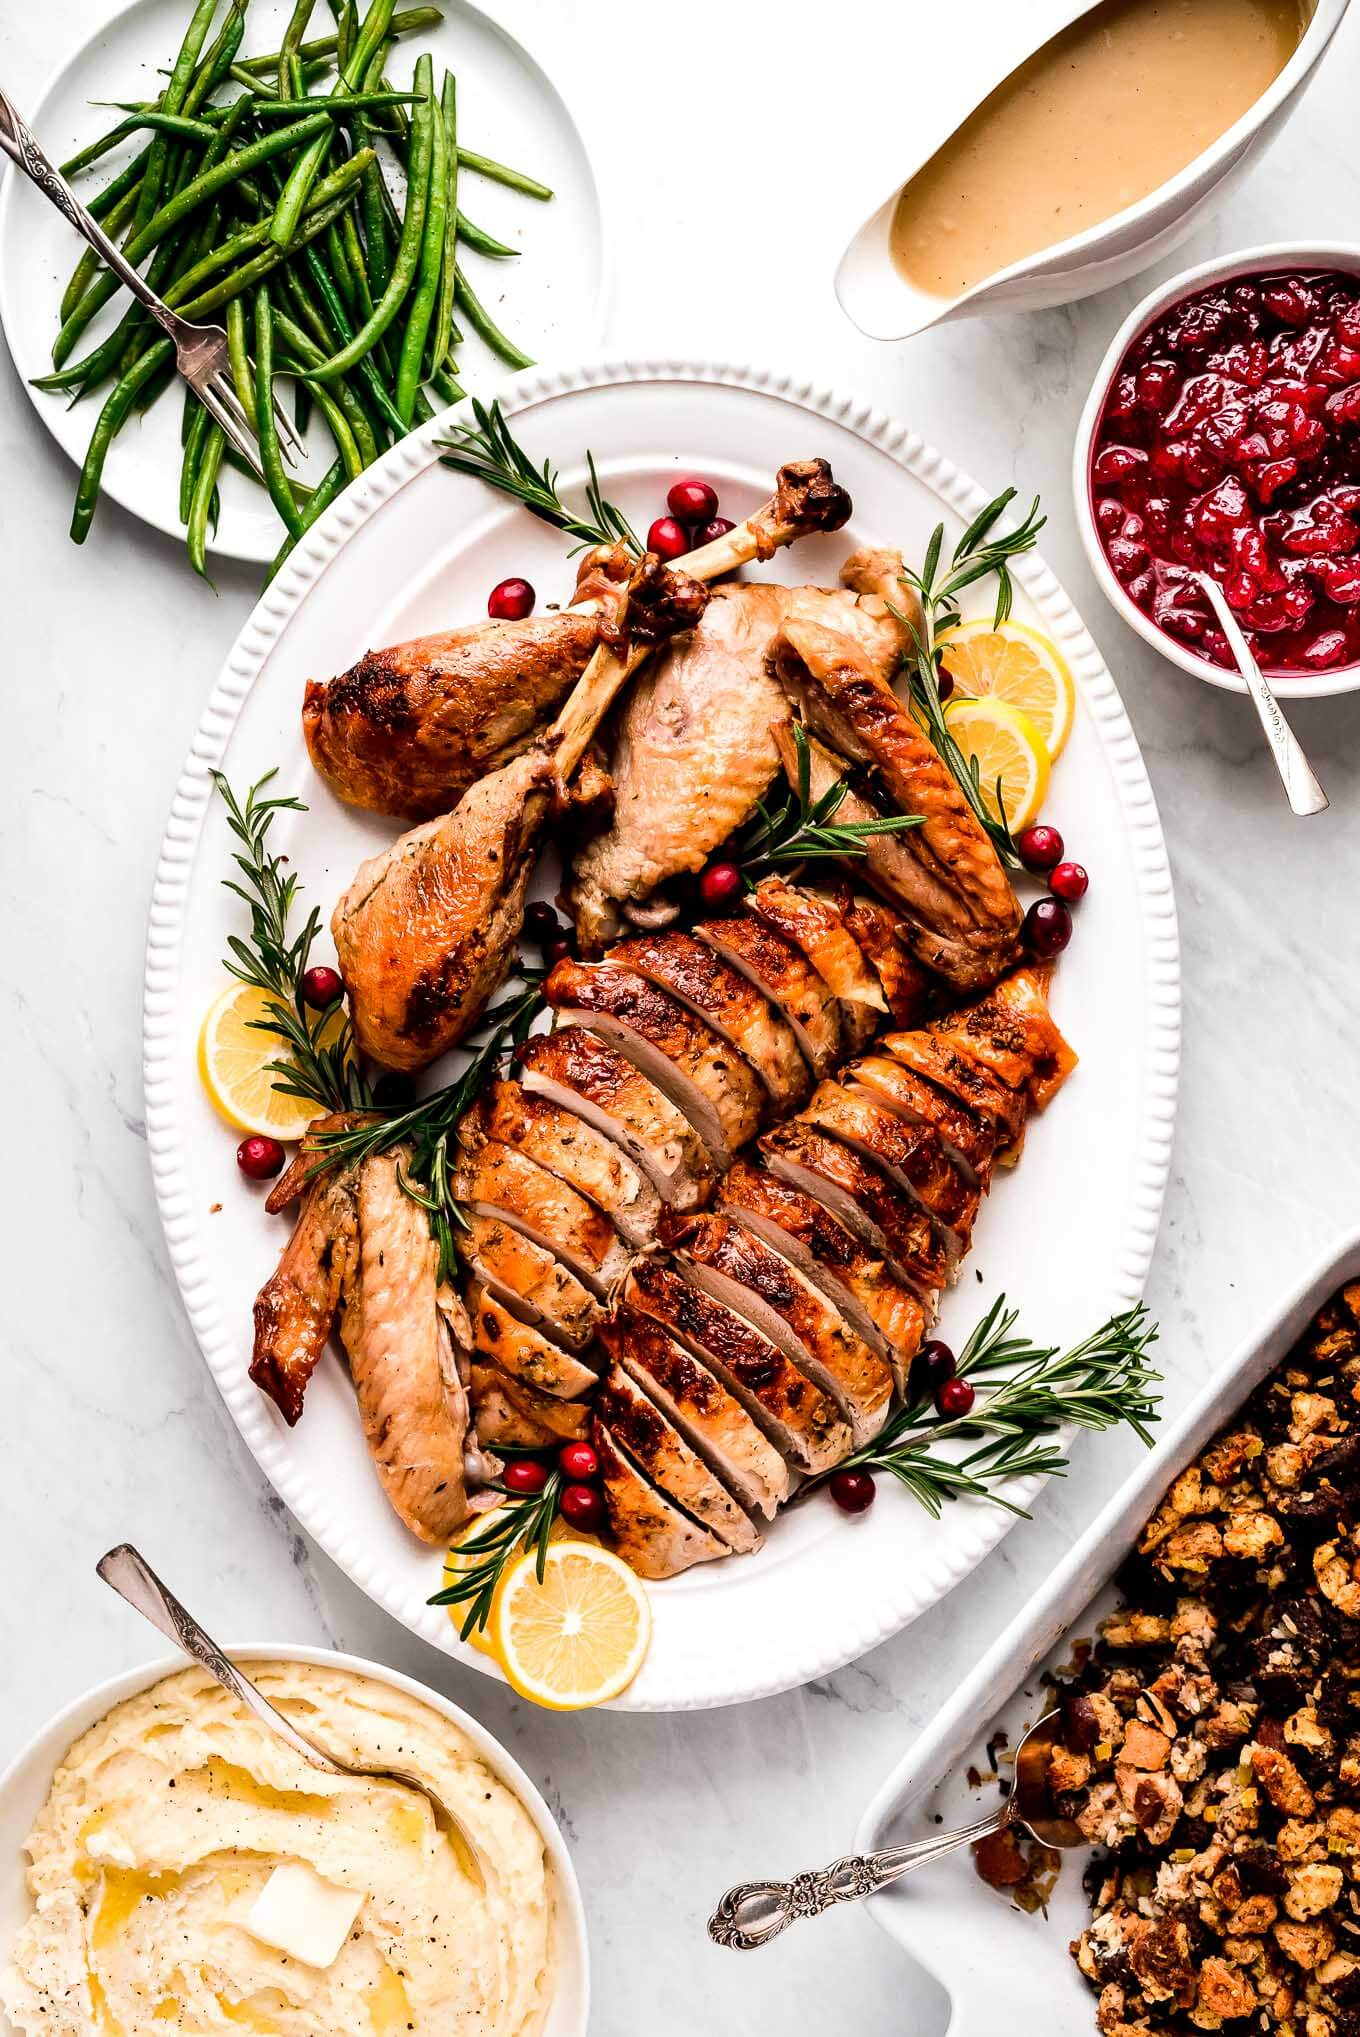 Roast Turkey in a Bag cut up and on a platter with serving bowls of green beans, mashed potatoes, stuffing, gravy, and cranberry sauce around it.